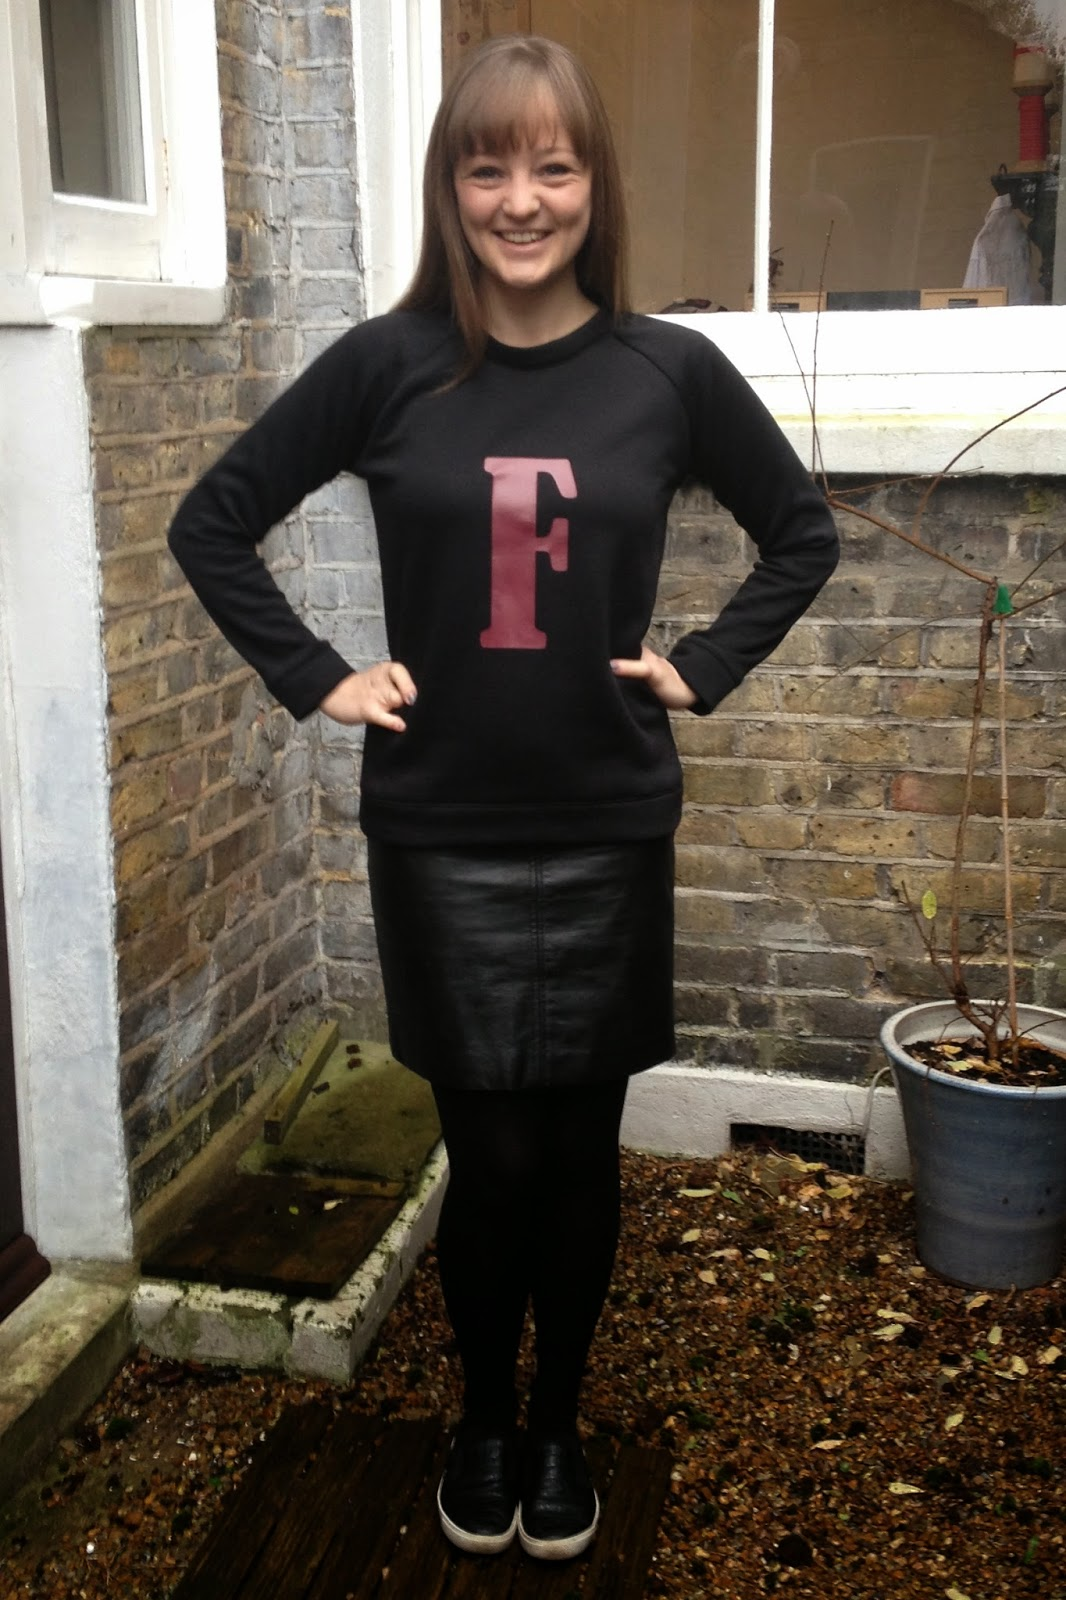 Diary of a Chain Stitcher: Quilted and Monogrammed White Russian Sweatshirts from Capital Chic